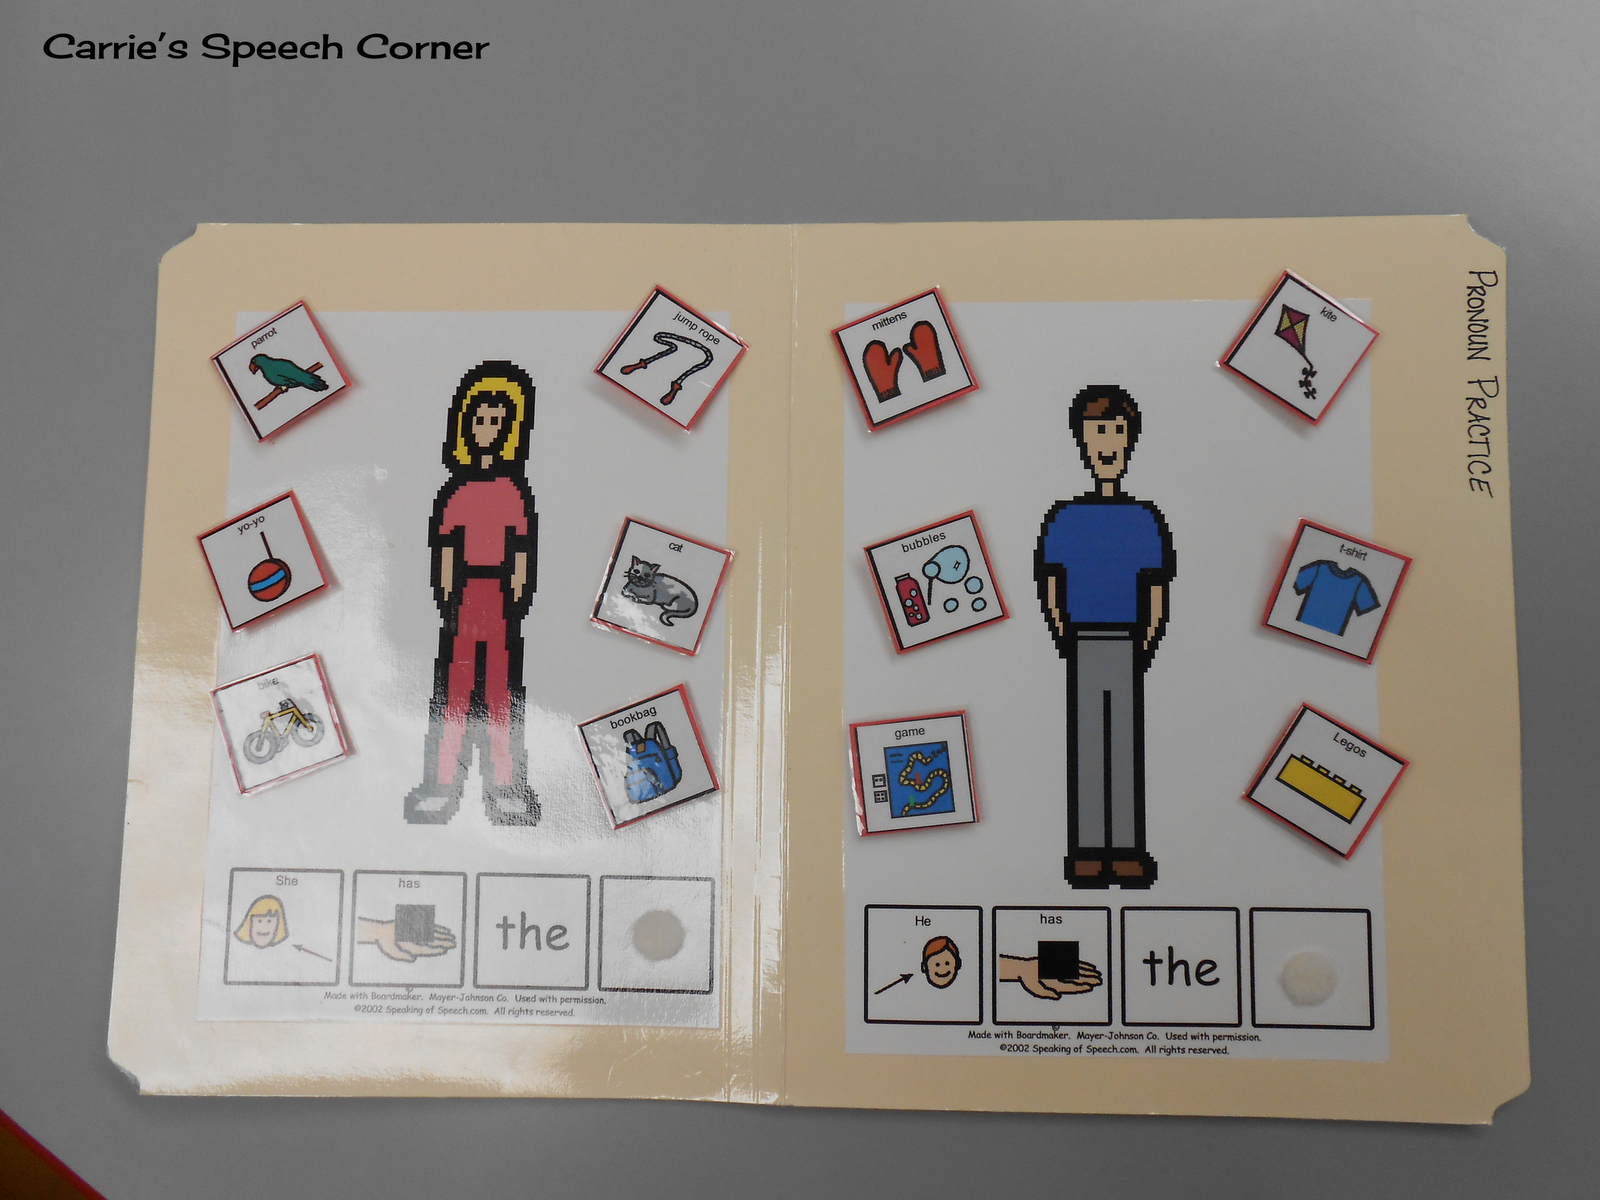 Pronoun Practice With Images